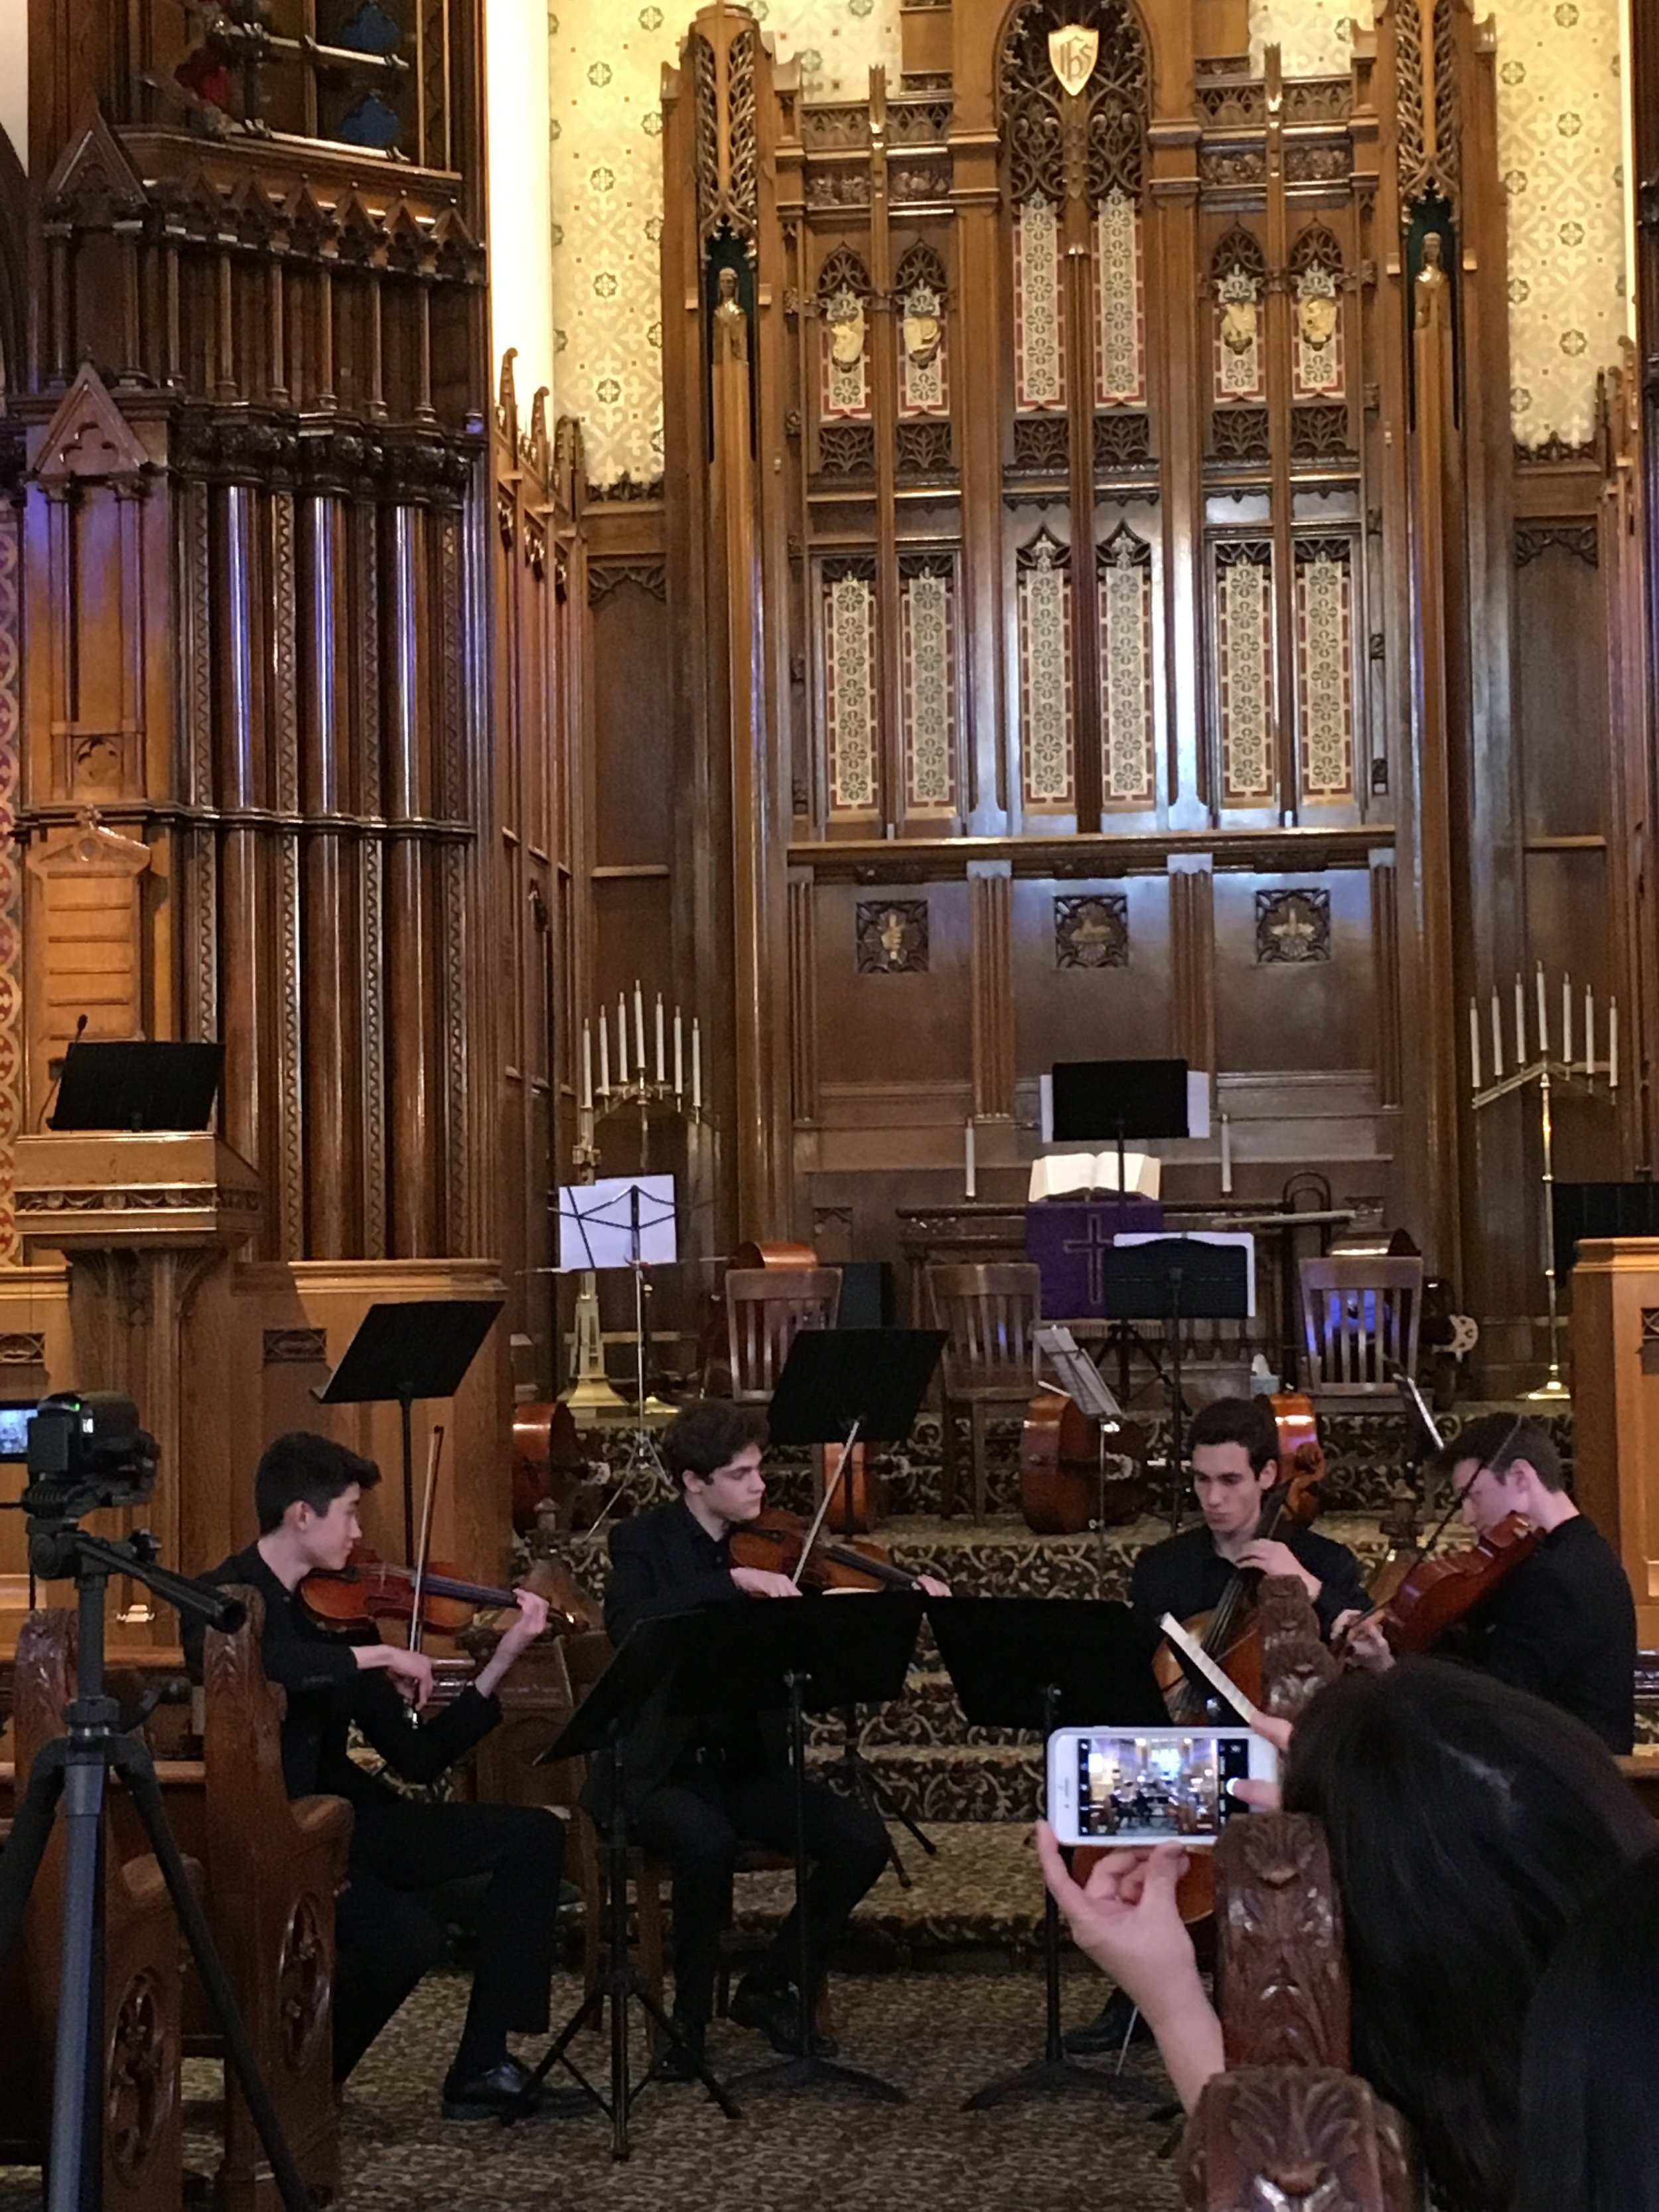 Tiffany Concert Series - Sunday, April 14, 2019PYSO's Mercurial Quartet - Charlie, Zach, Noah, and Felix - performed, along with the Vivo Quartet, in the beautiful Calvary United Methodist Church on the North Side, while the afternoon sun streamed in through their lovely Tiffany windows.